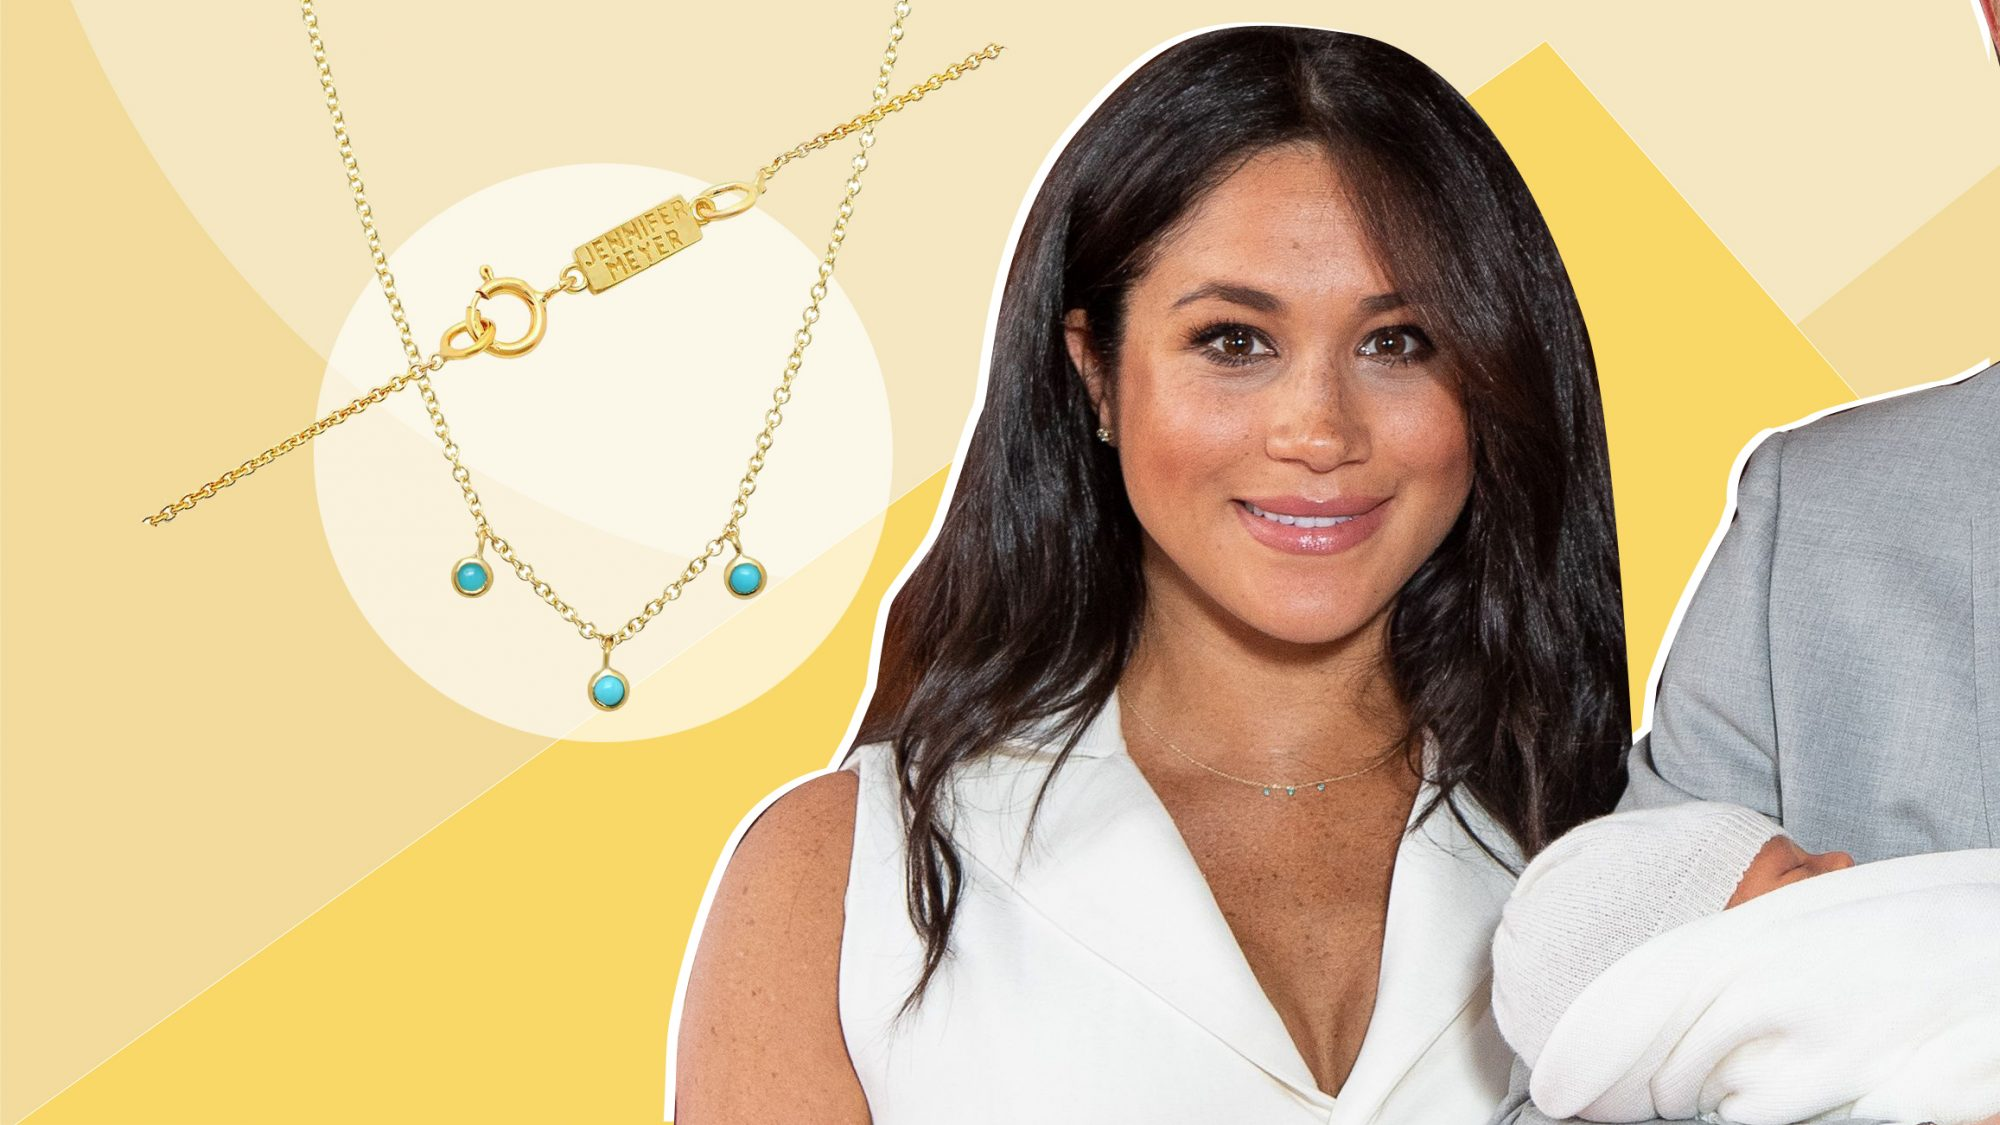 Meghan Markle's Newest Necklace Is a Sentimental Nod to Her Family of 3